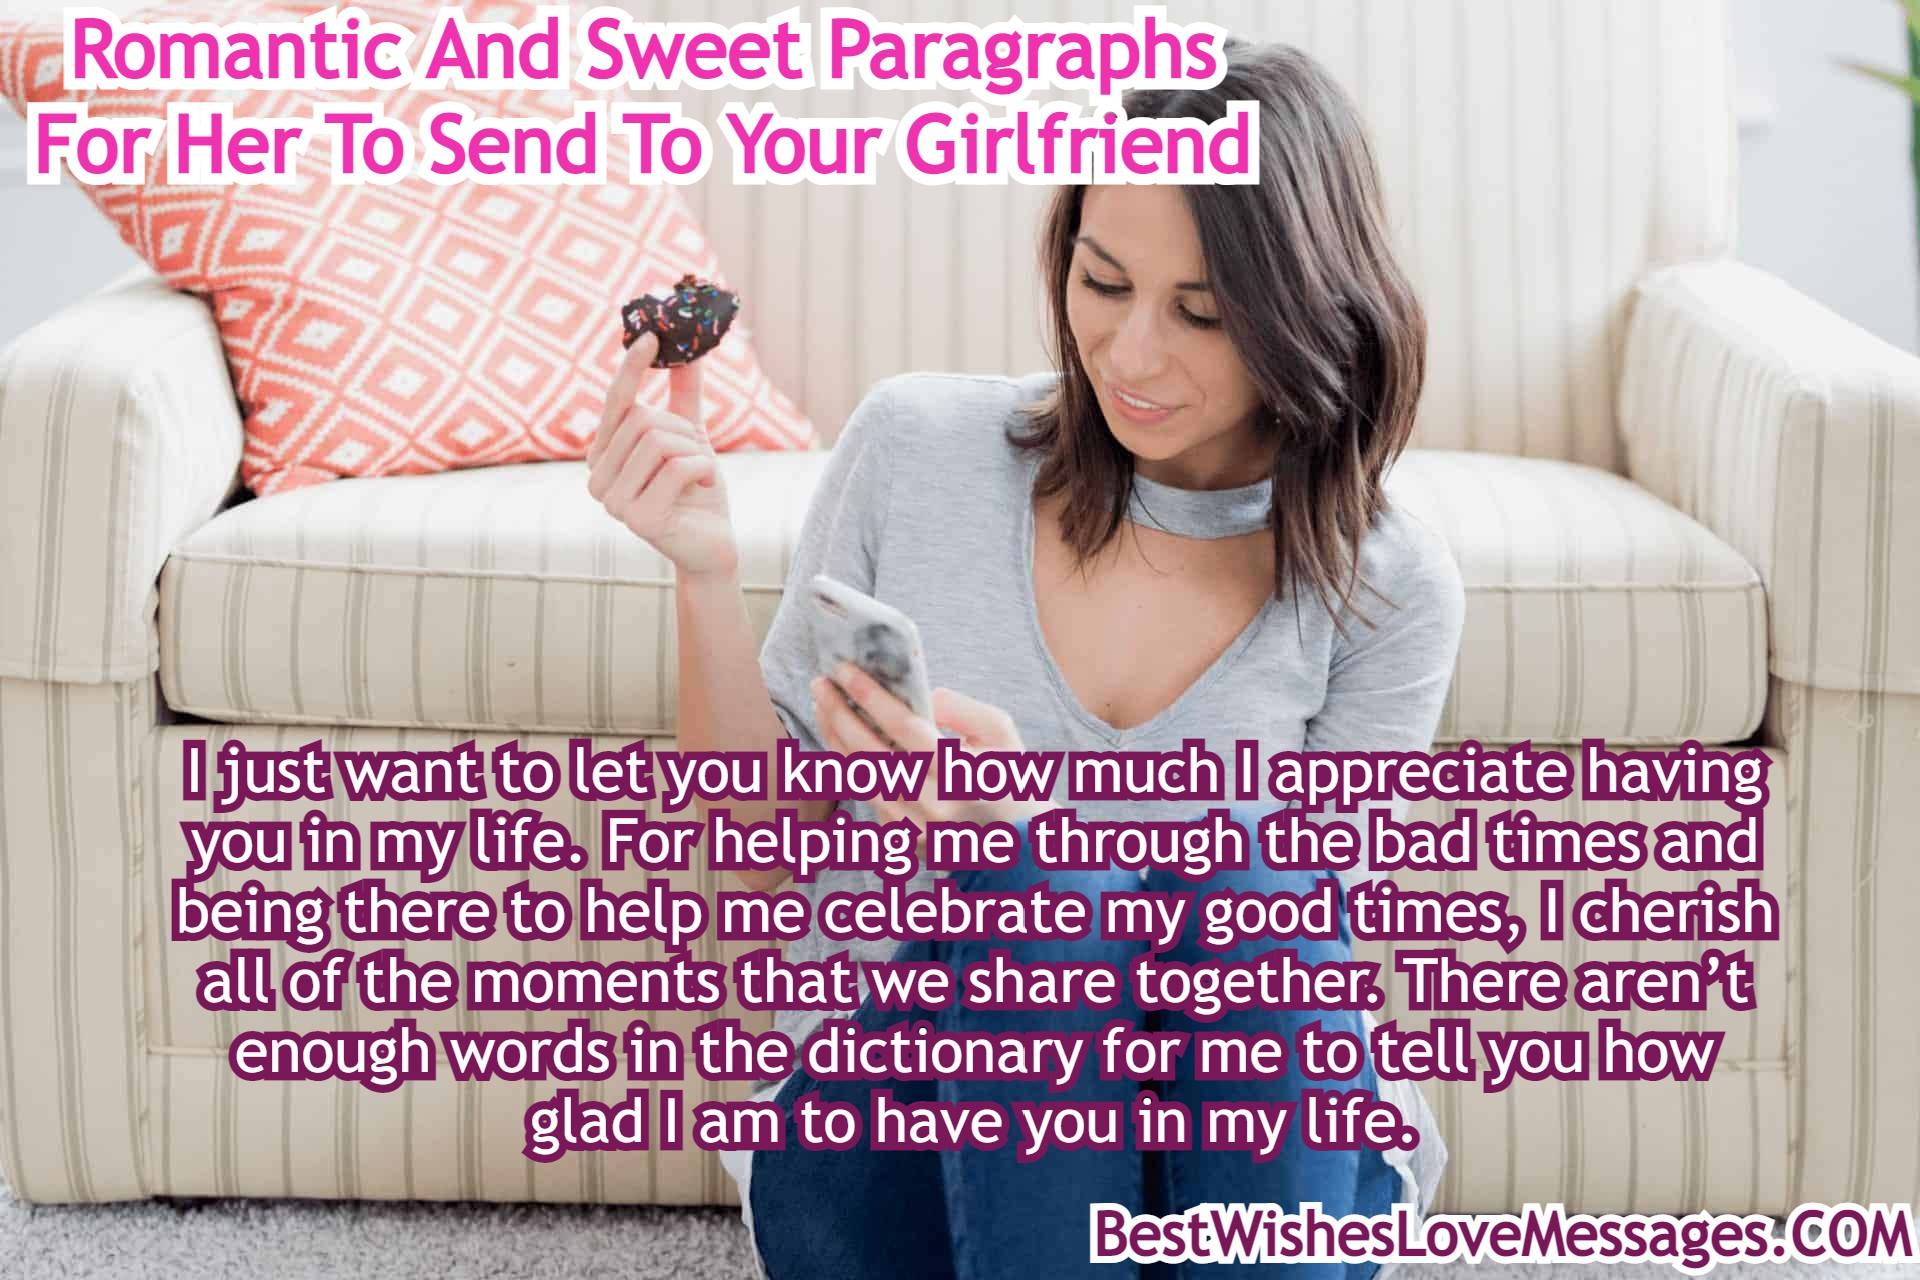 Paragraphs girlfriend send your long to sweet to 2021 Cute